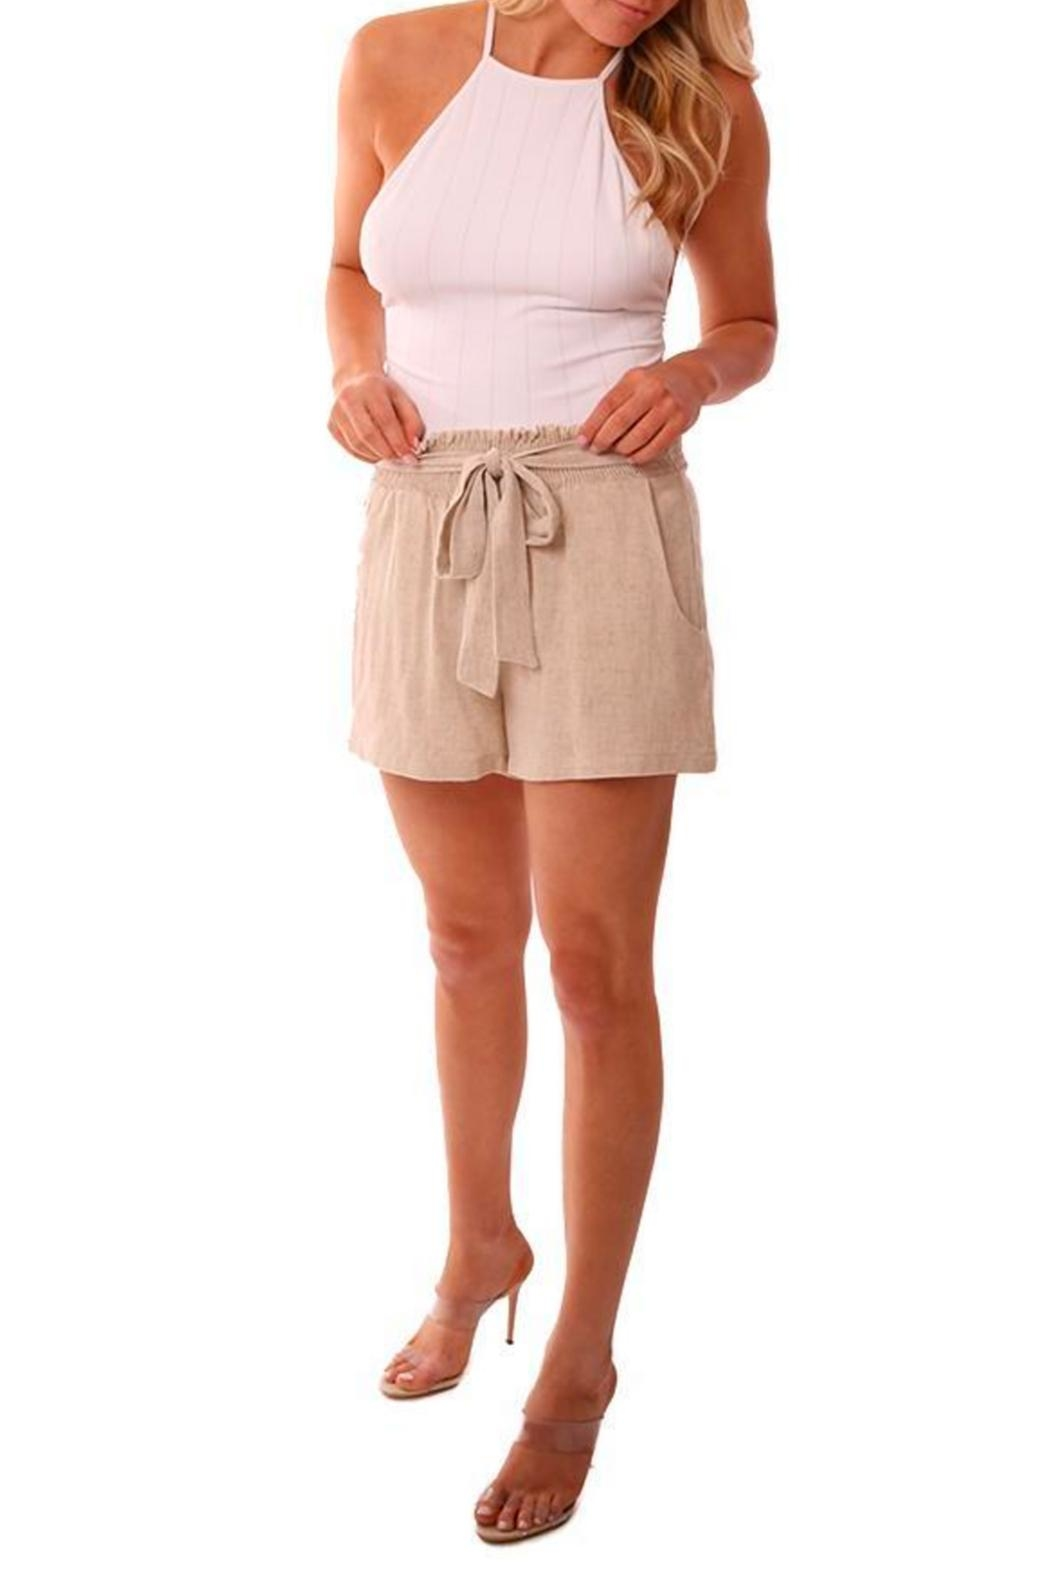 Veronica M Smocked Linen Shorts - Main Image